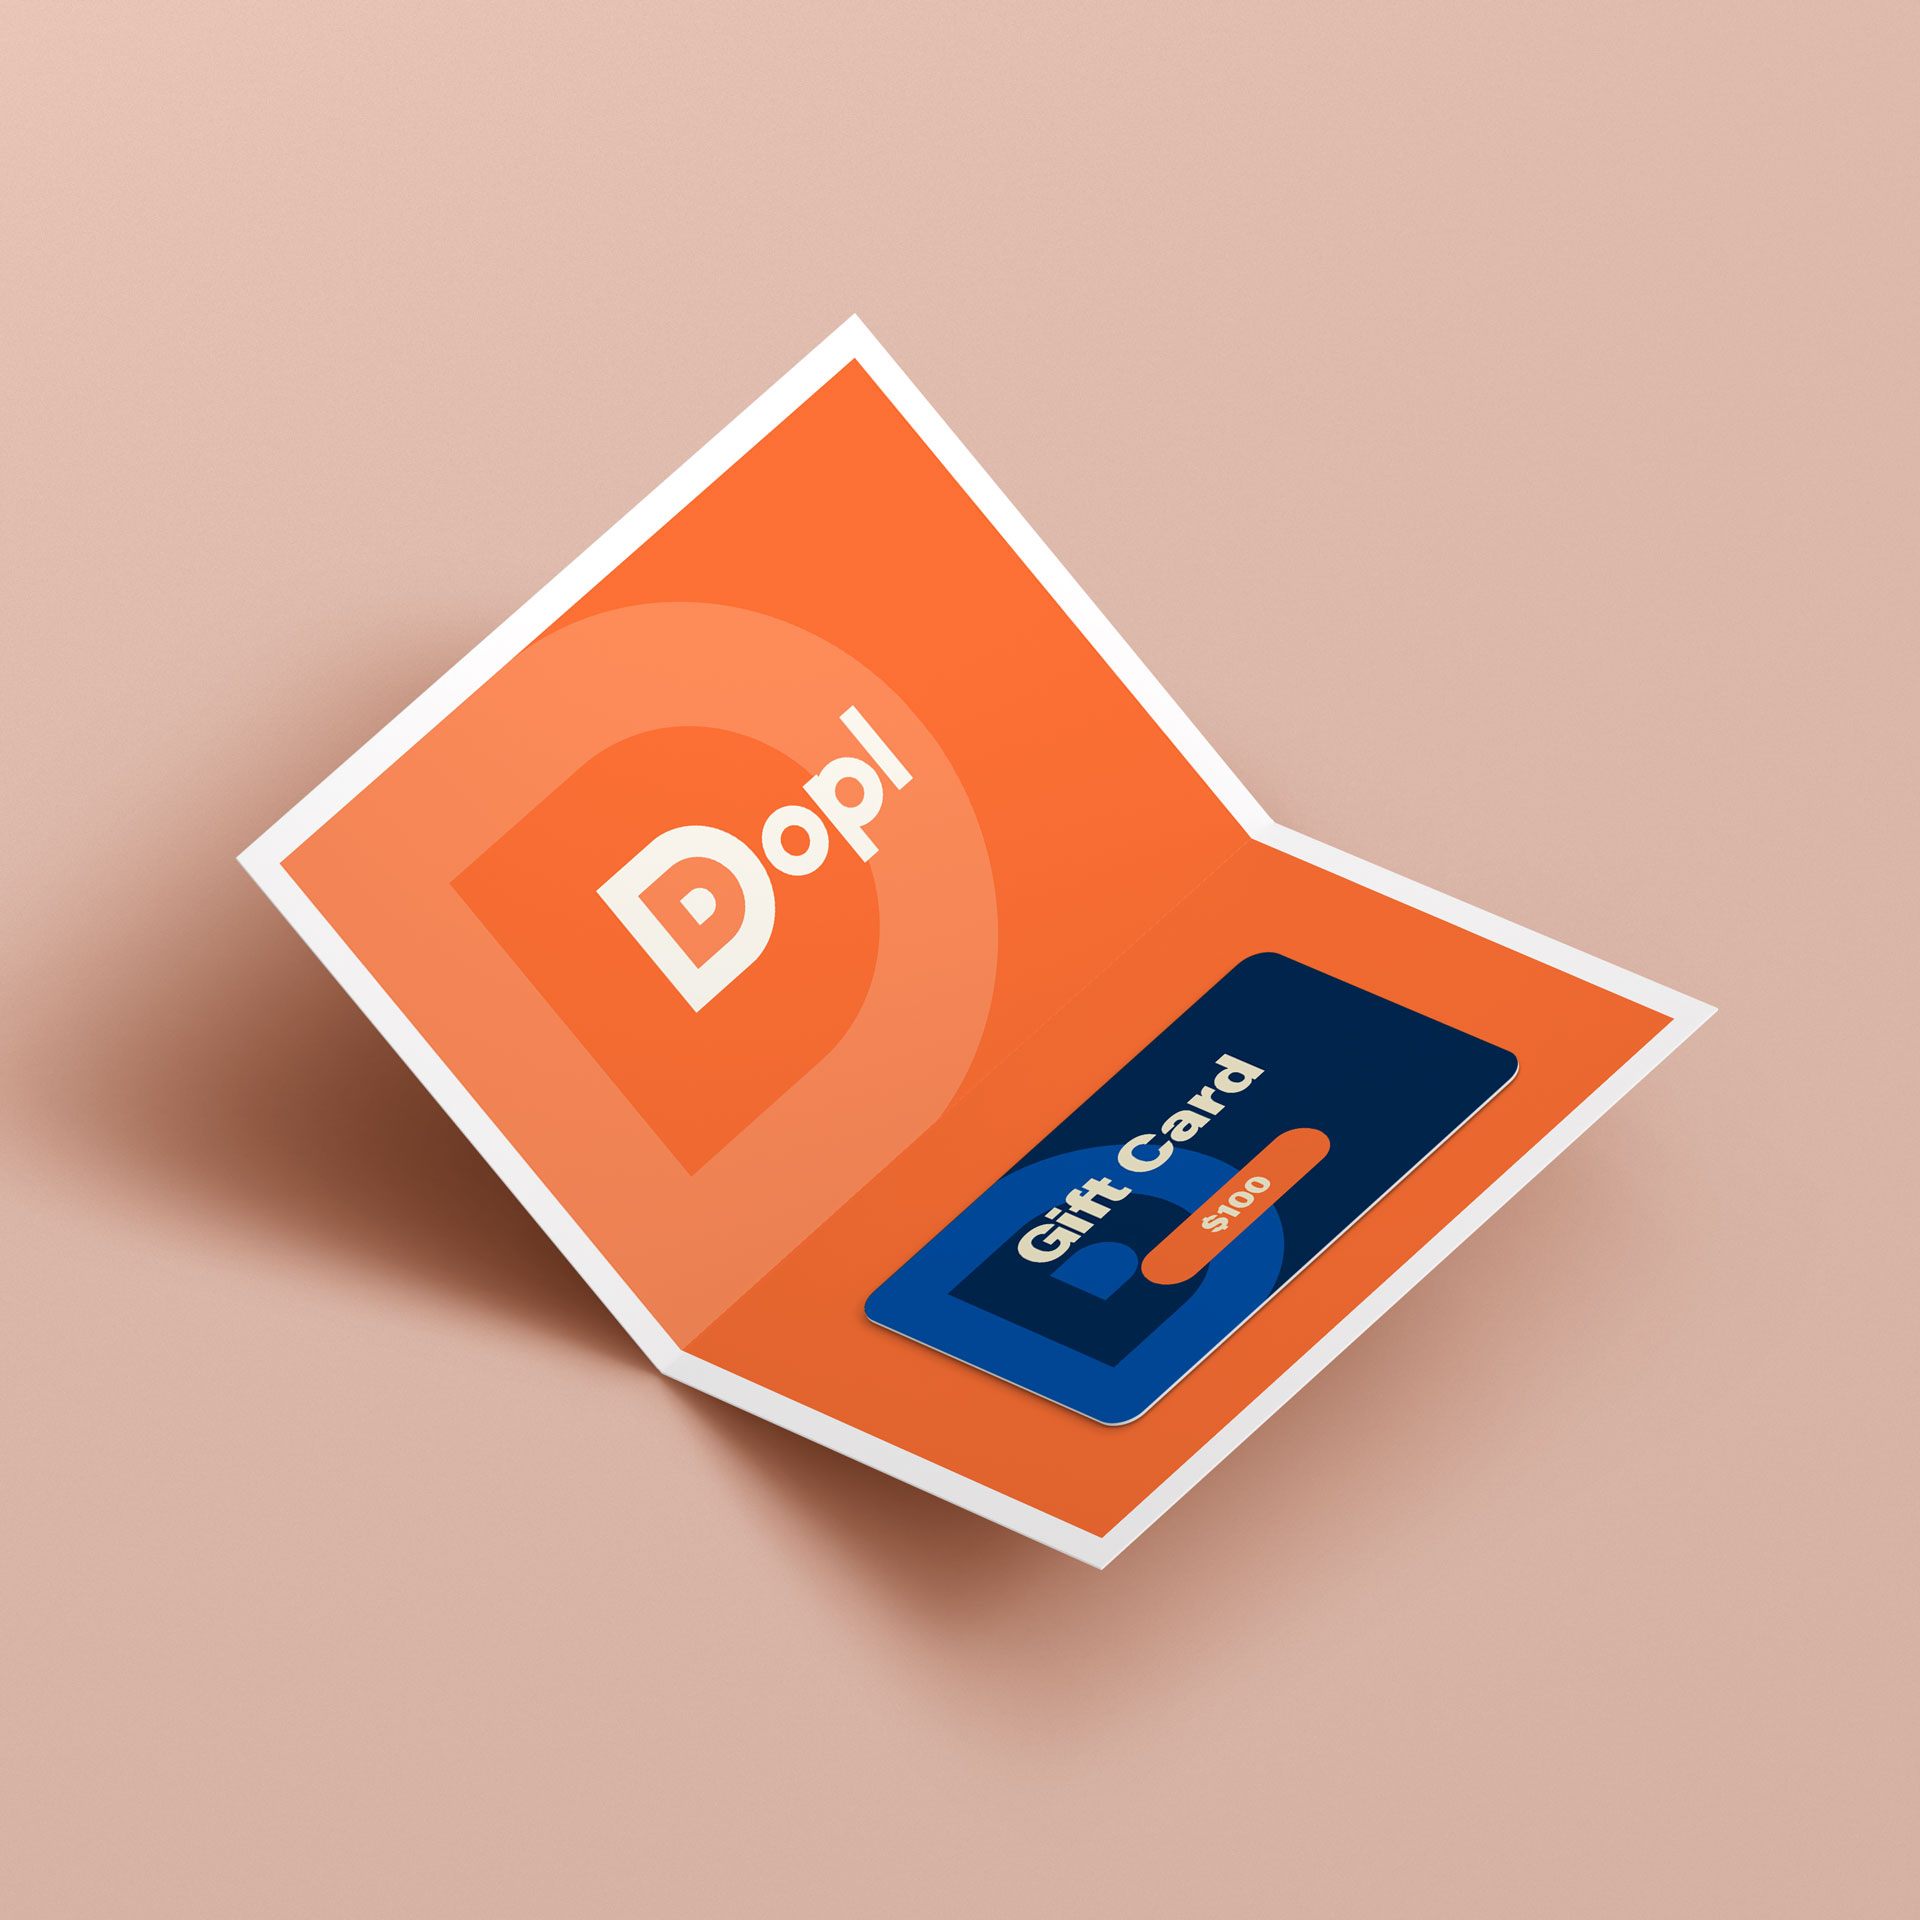 image of a Dopl gift card.